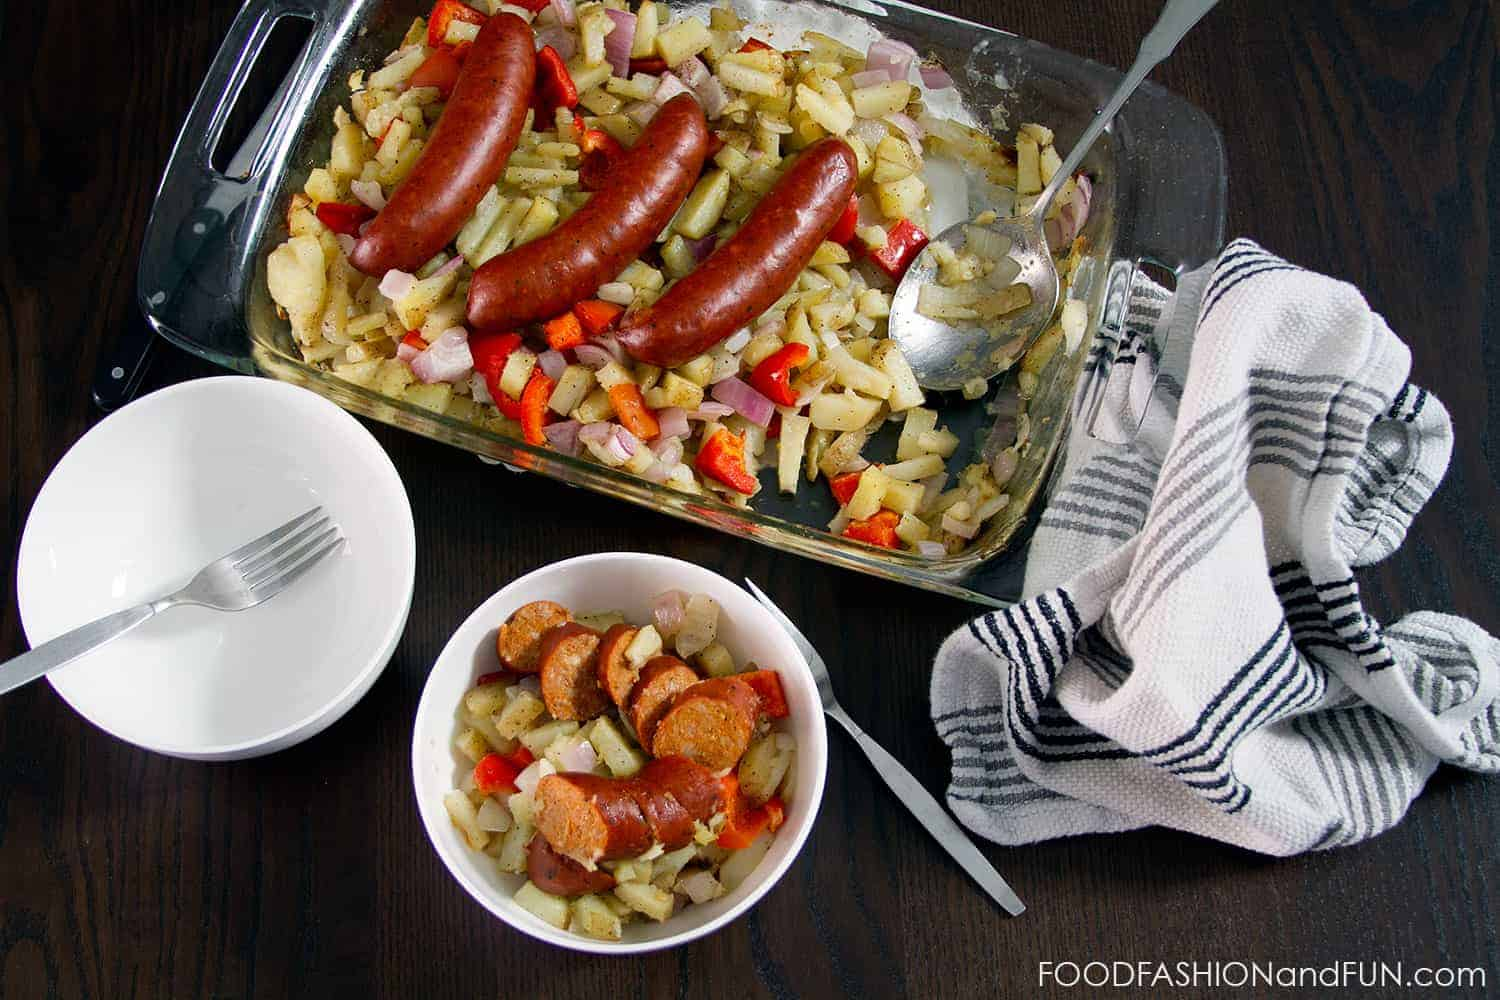 sausage, peppers, onions, food, recipe, foodfashionandfun, food blogger, lifestyle blogger